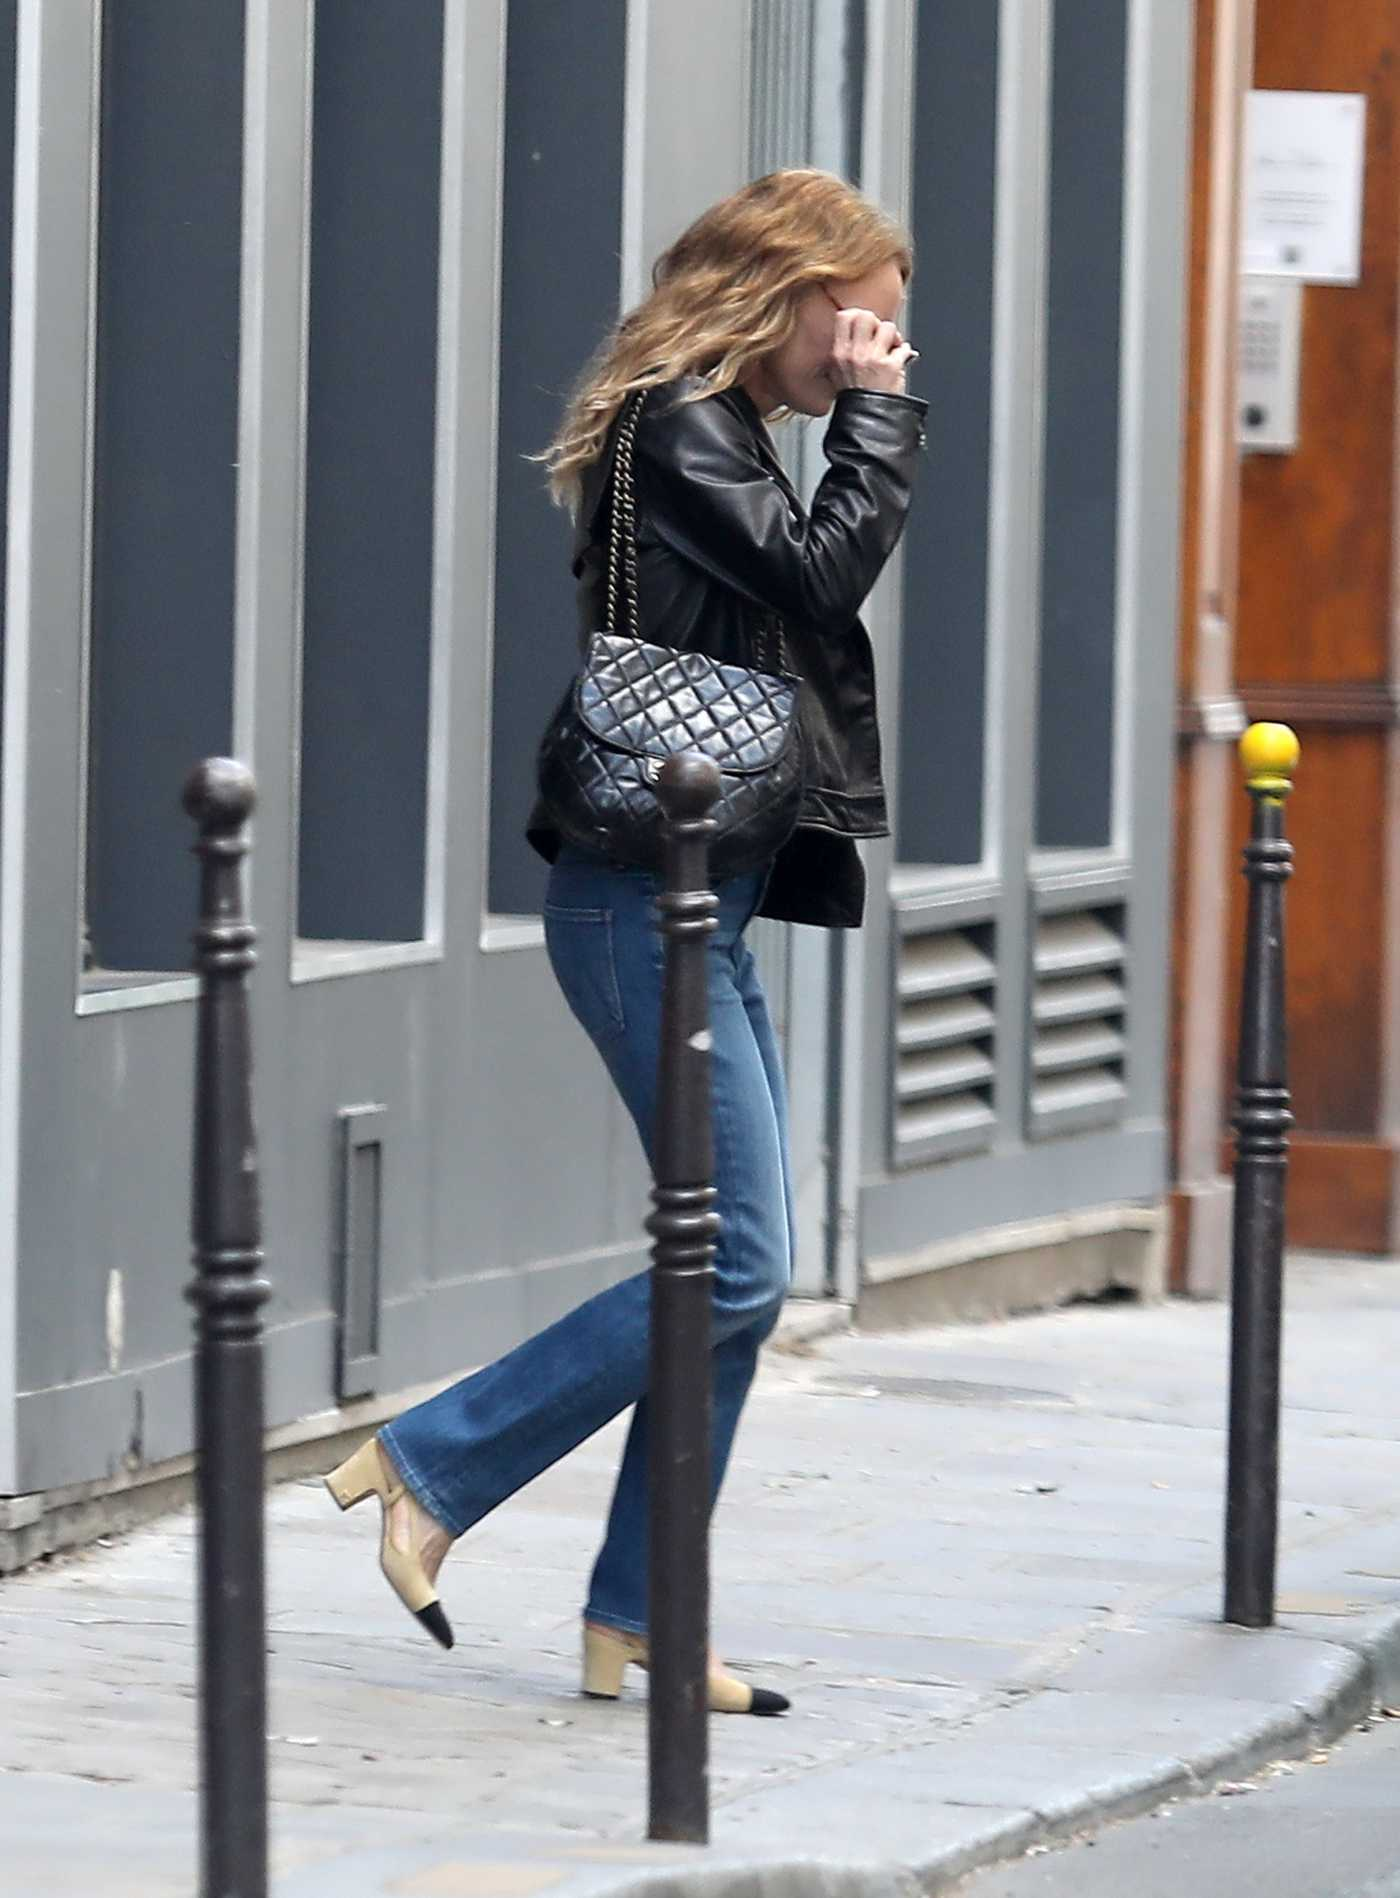 Vanessa Paradis in a Black Jacket Was Seen Out in Paris 07/07/2020